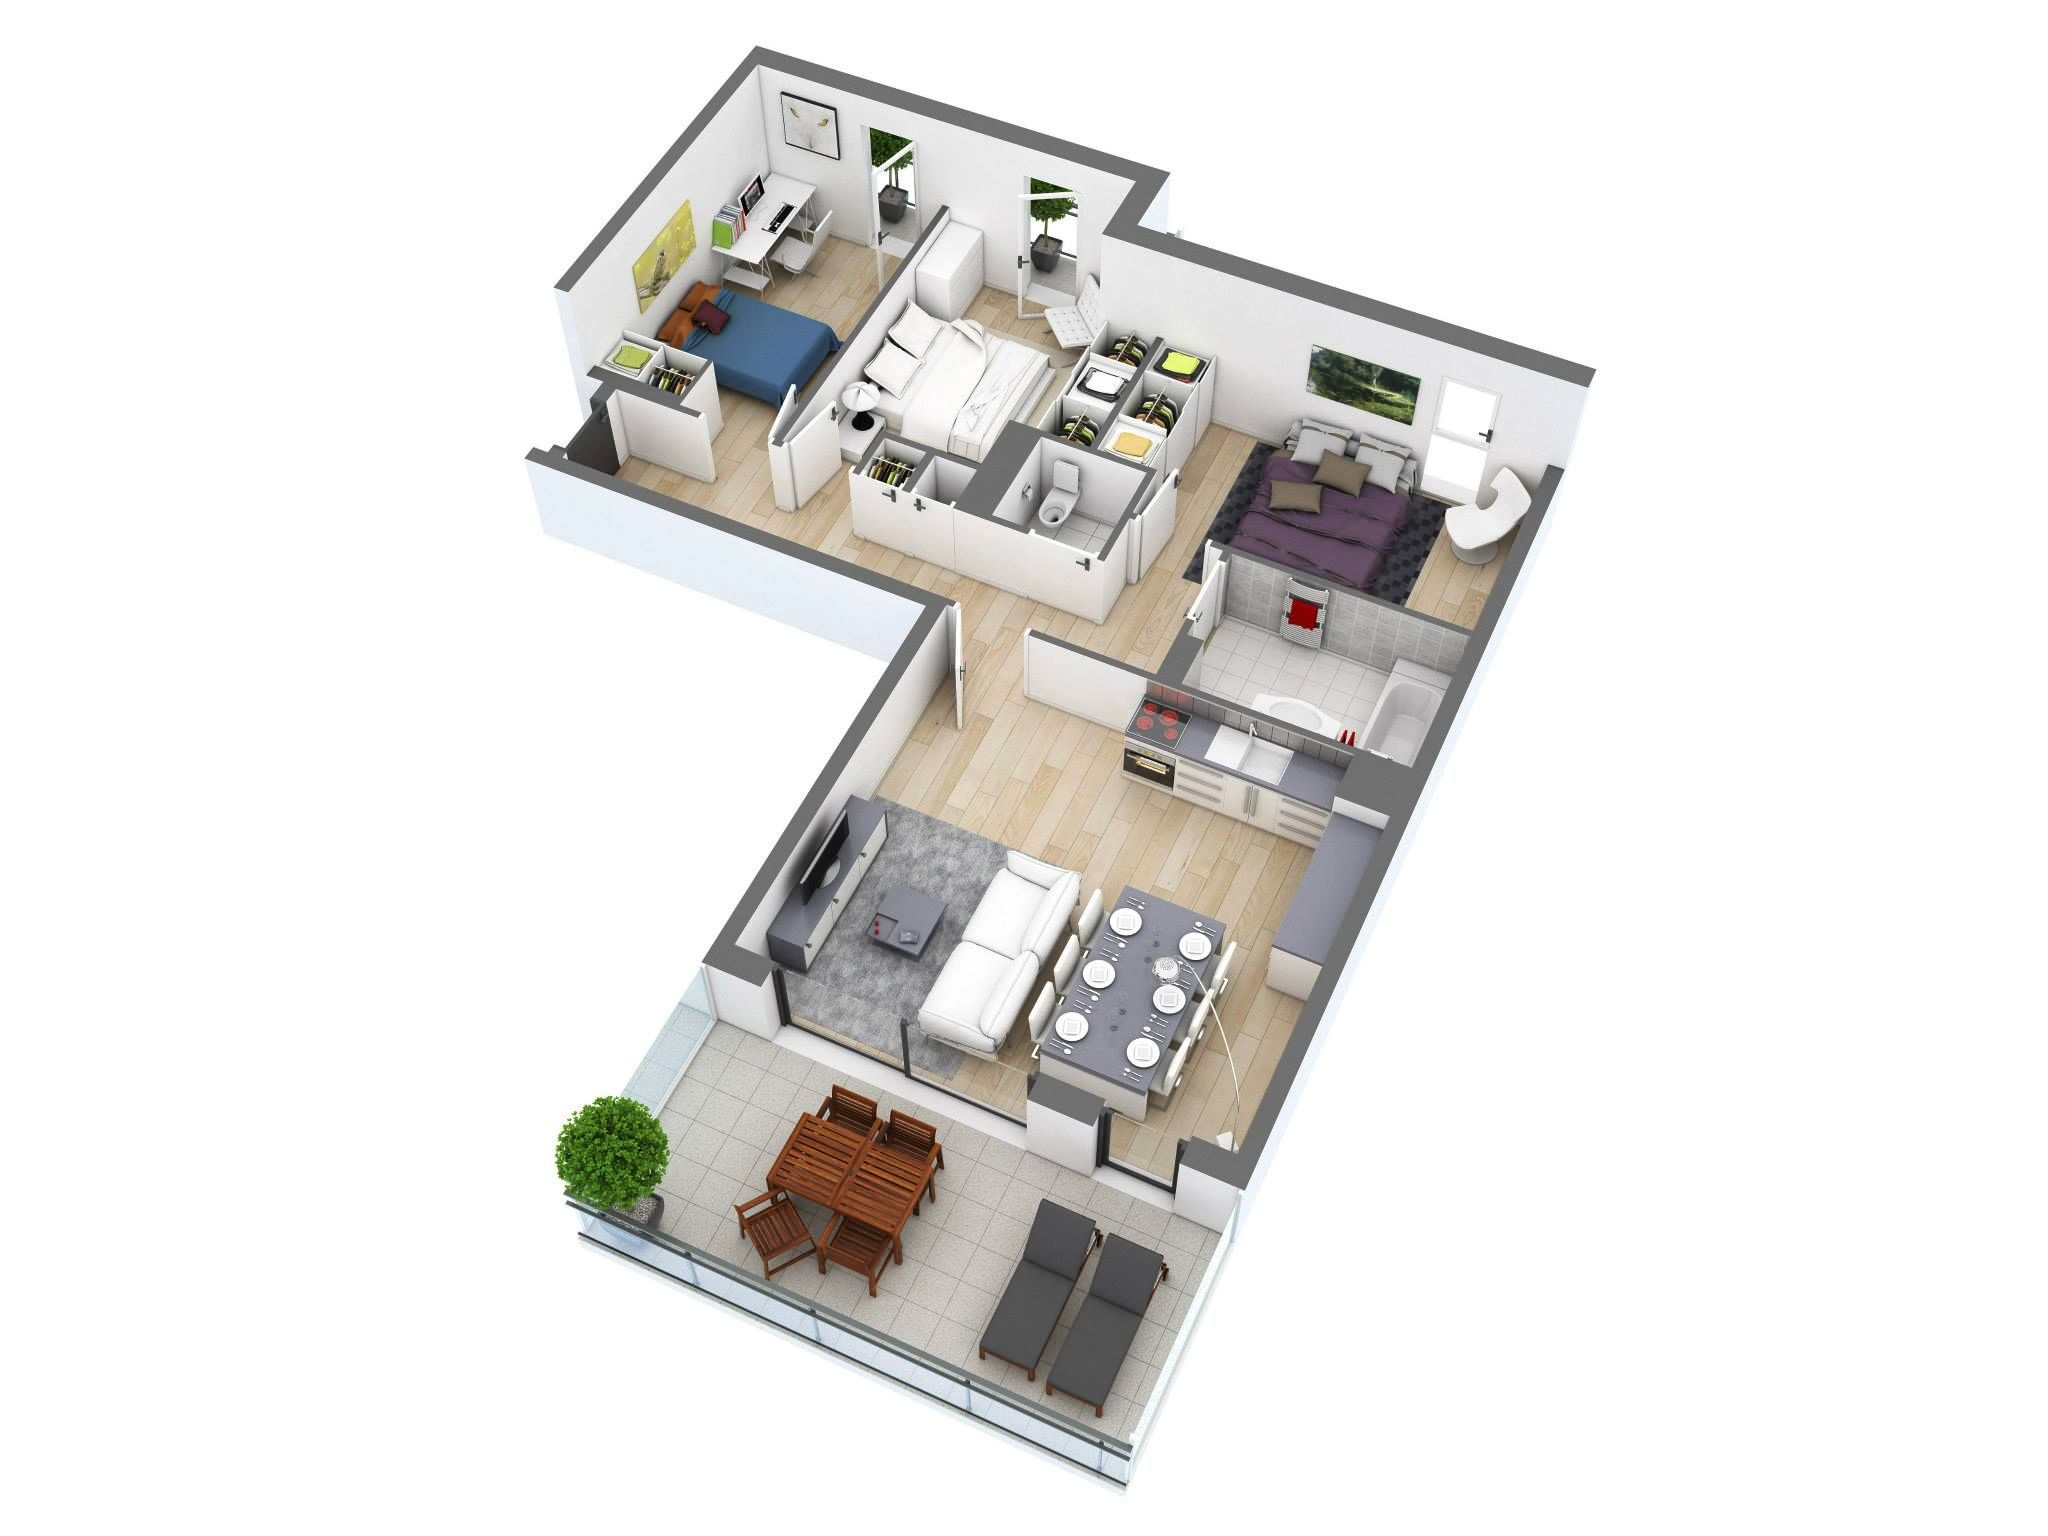 Captivating 3 Bedroom Floor Plans.